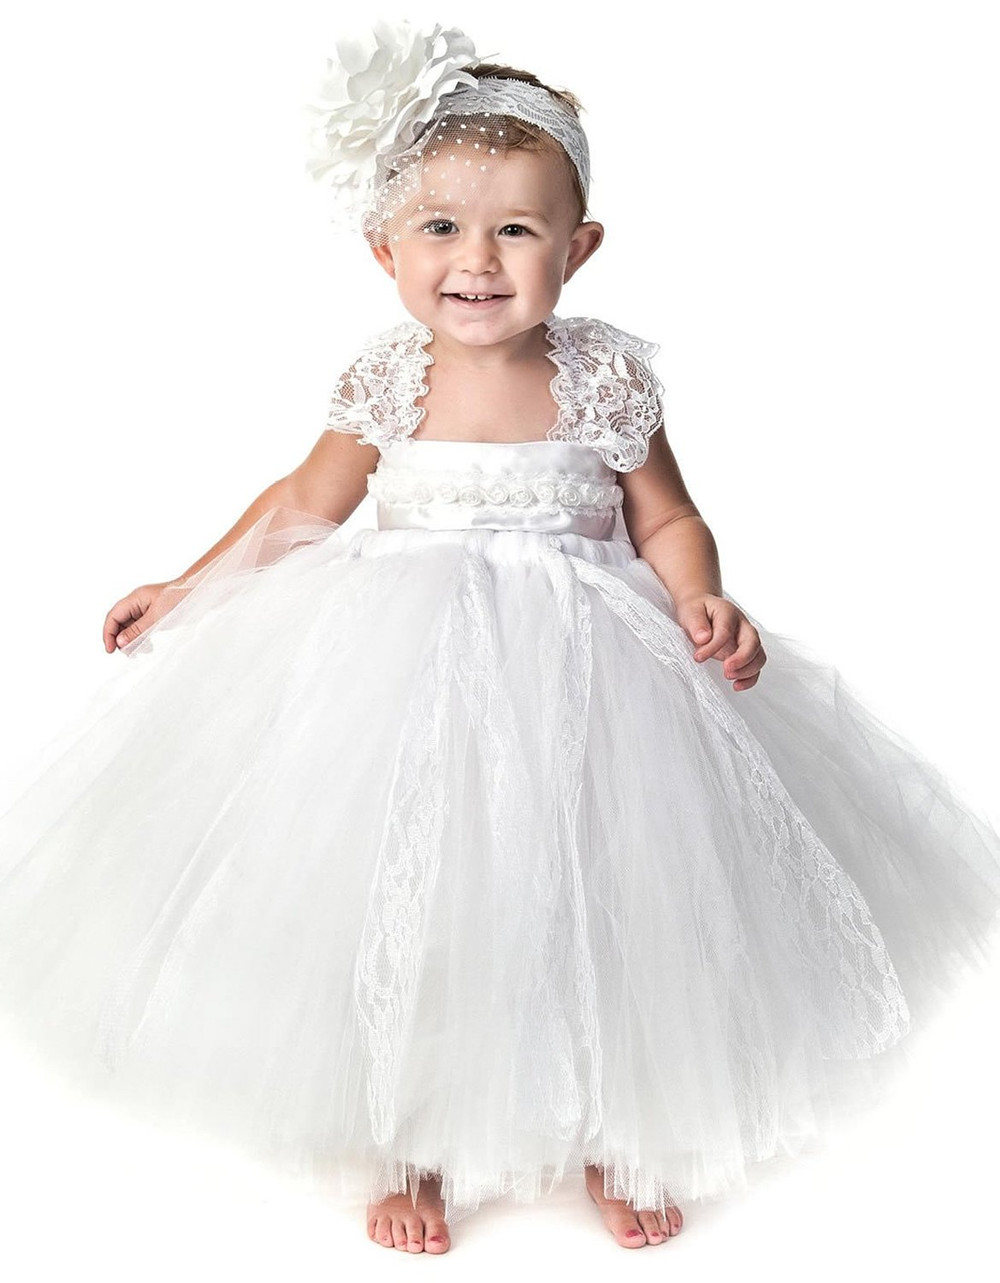 Cute baby dress birthday pageant gown for little girlstulle tutu cute baby dress birthday pageant gown for little girlstulle tutu first communion dresses for girlsjunior bridesmaid gowns ombrellifo Image collections